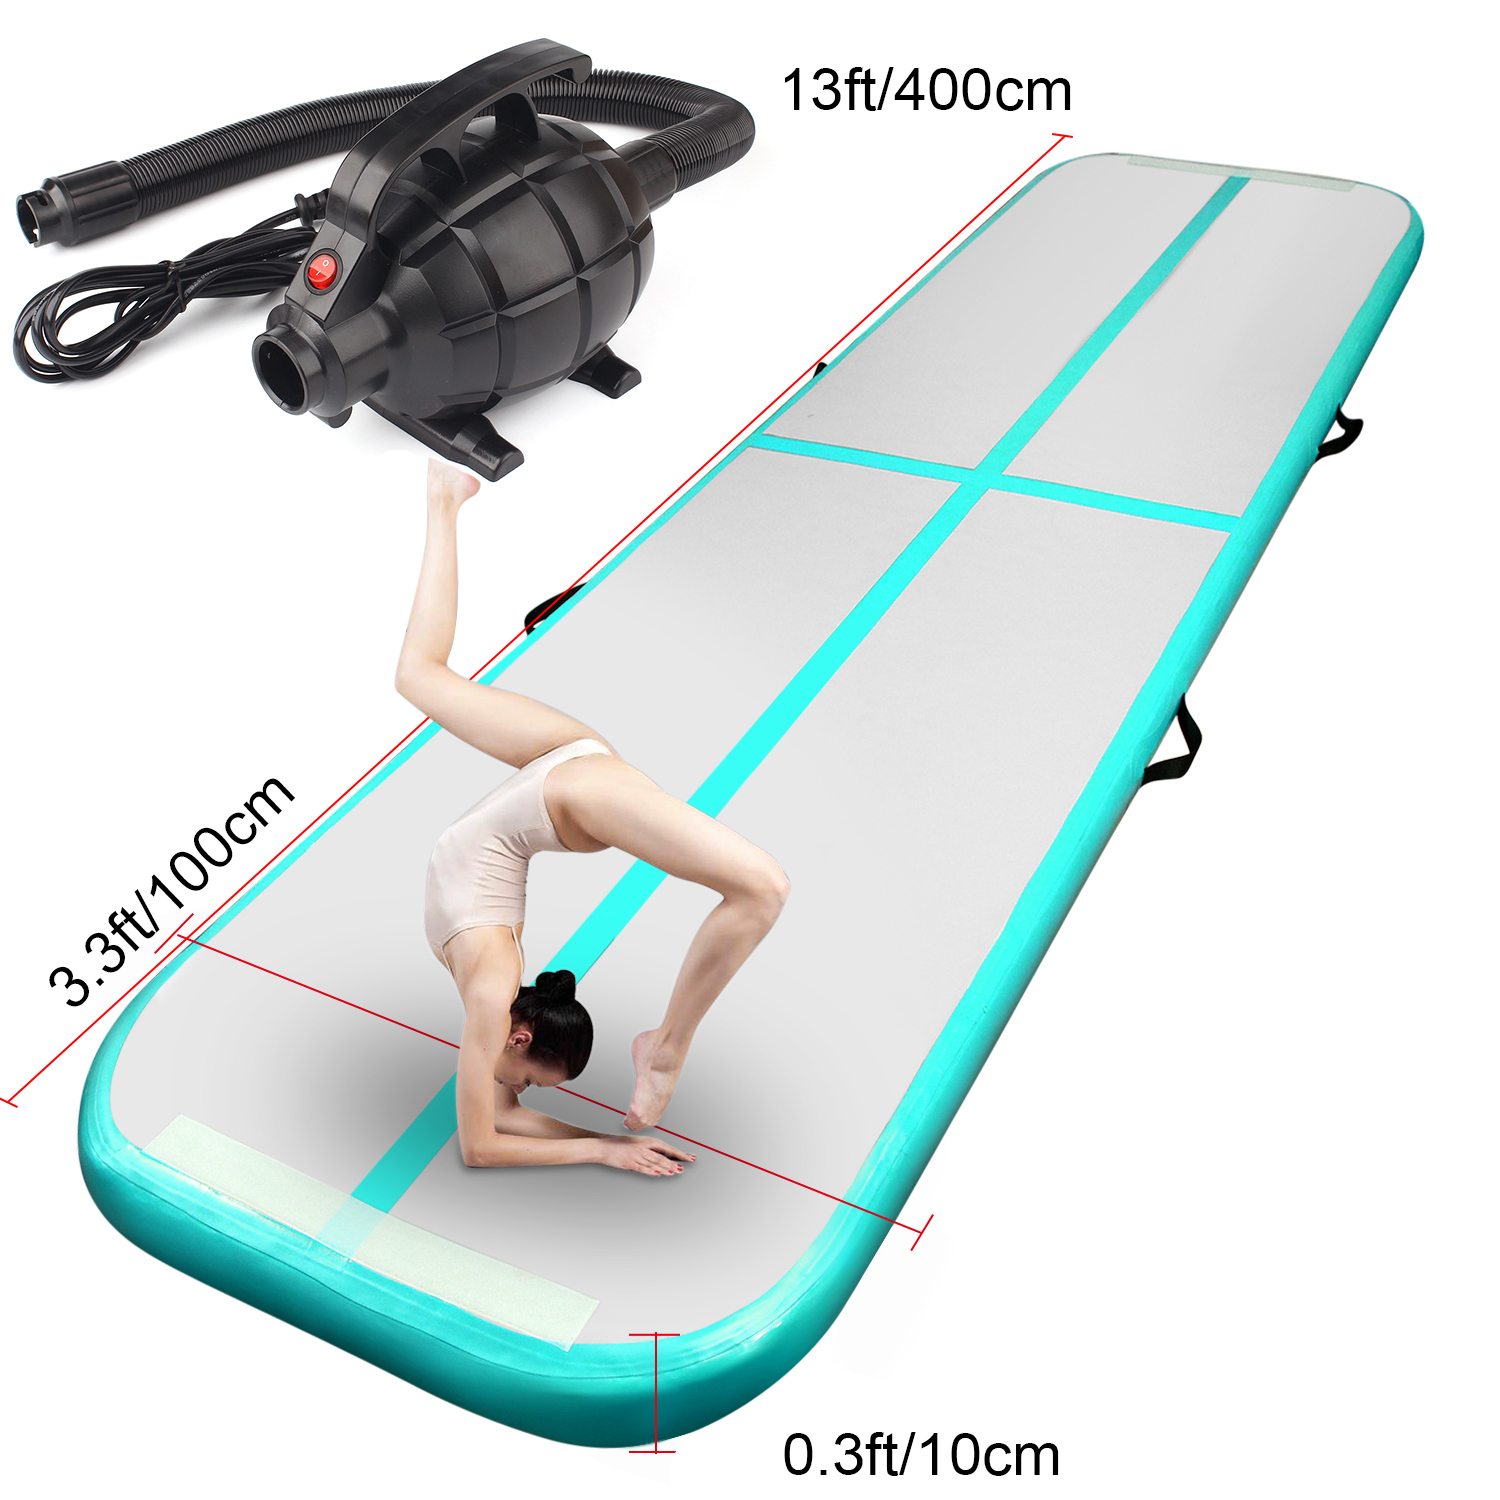 Green 4m/13ft Inflatable Air Track Tumbling Gymnastic Mat Floor Home Training W/ Pump Fbsport